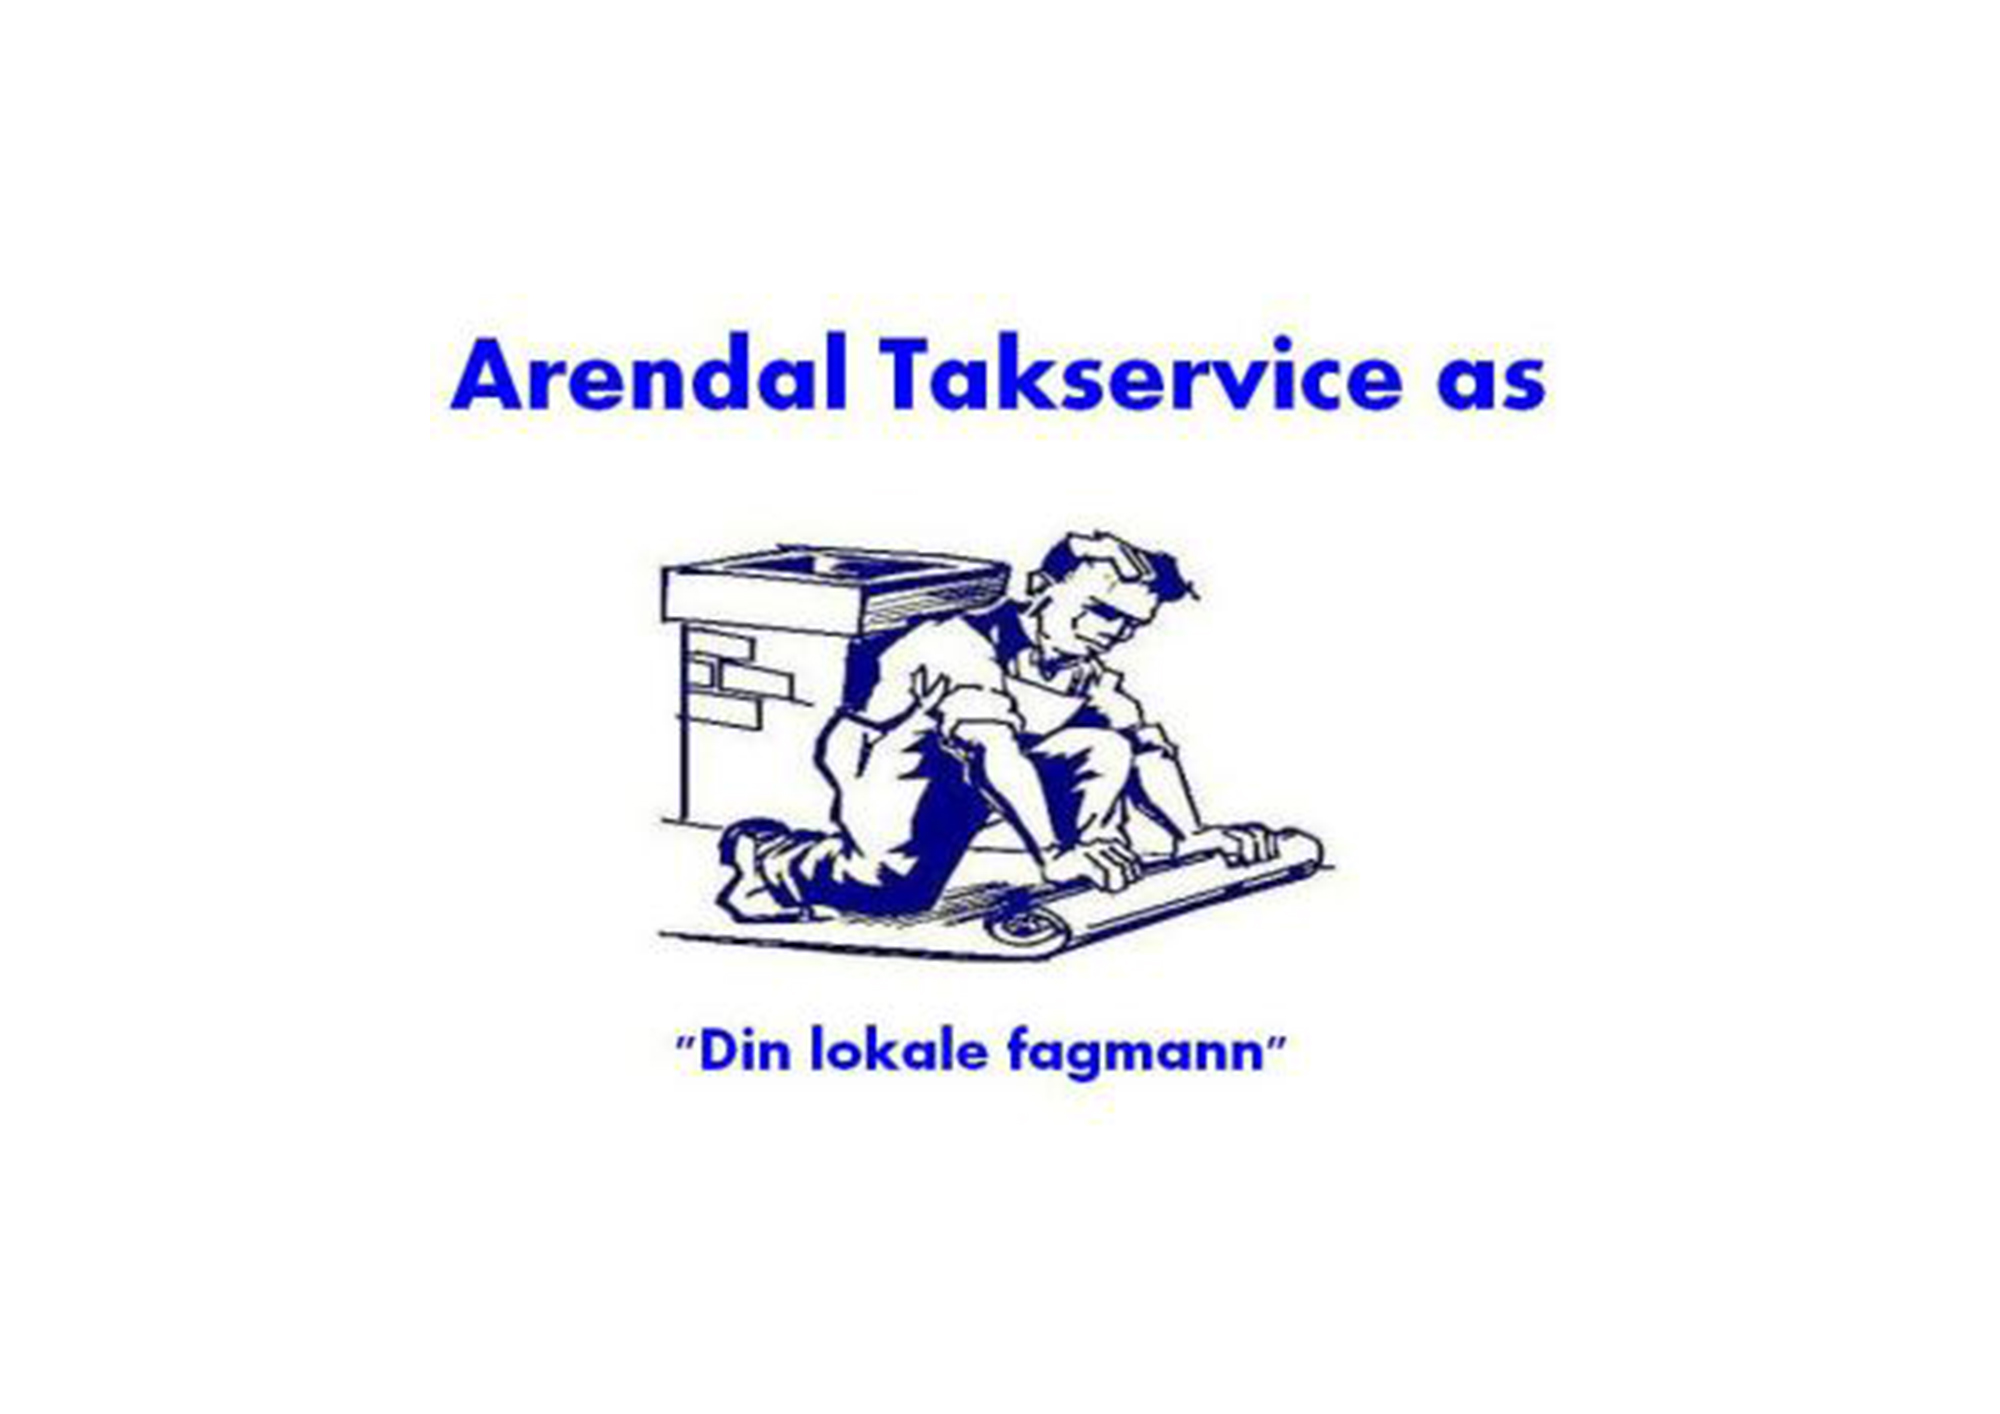 Arendal Takservice AS